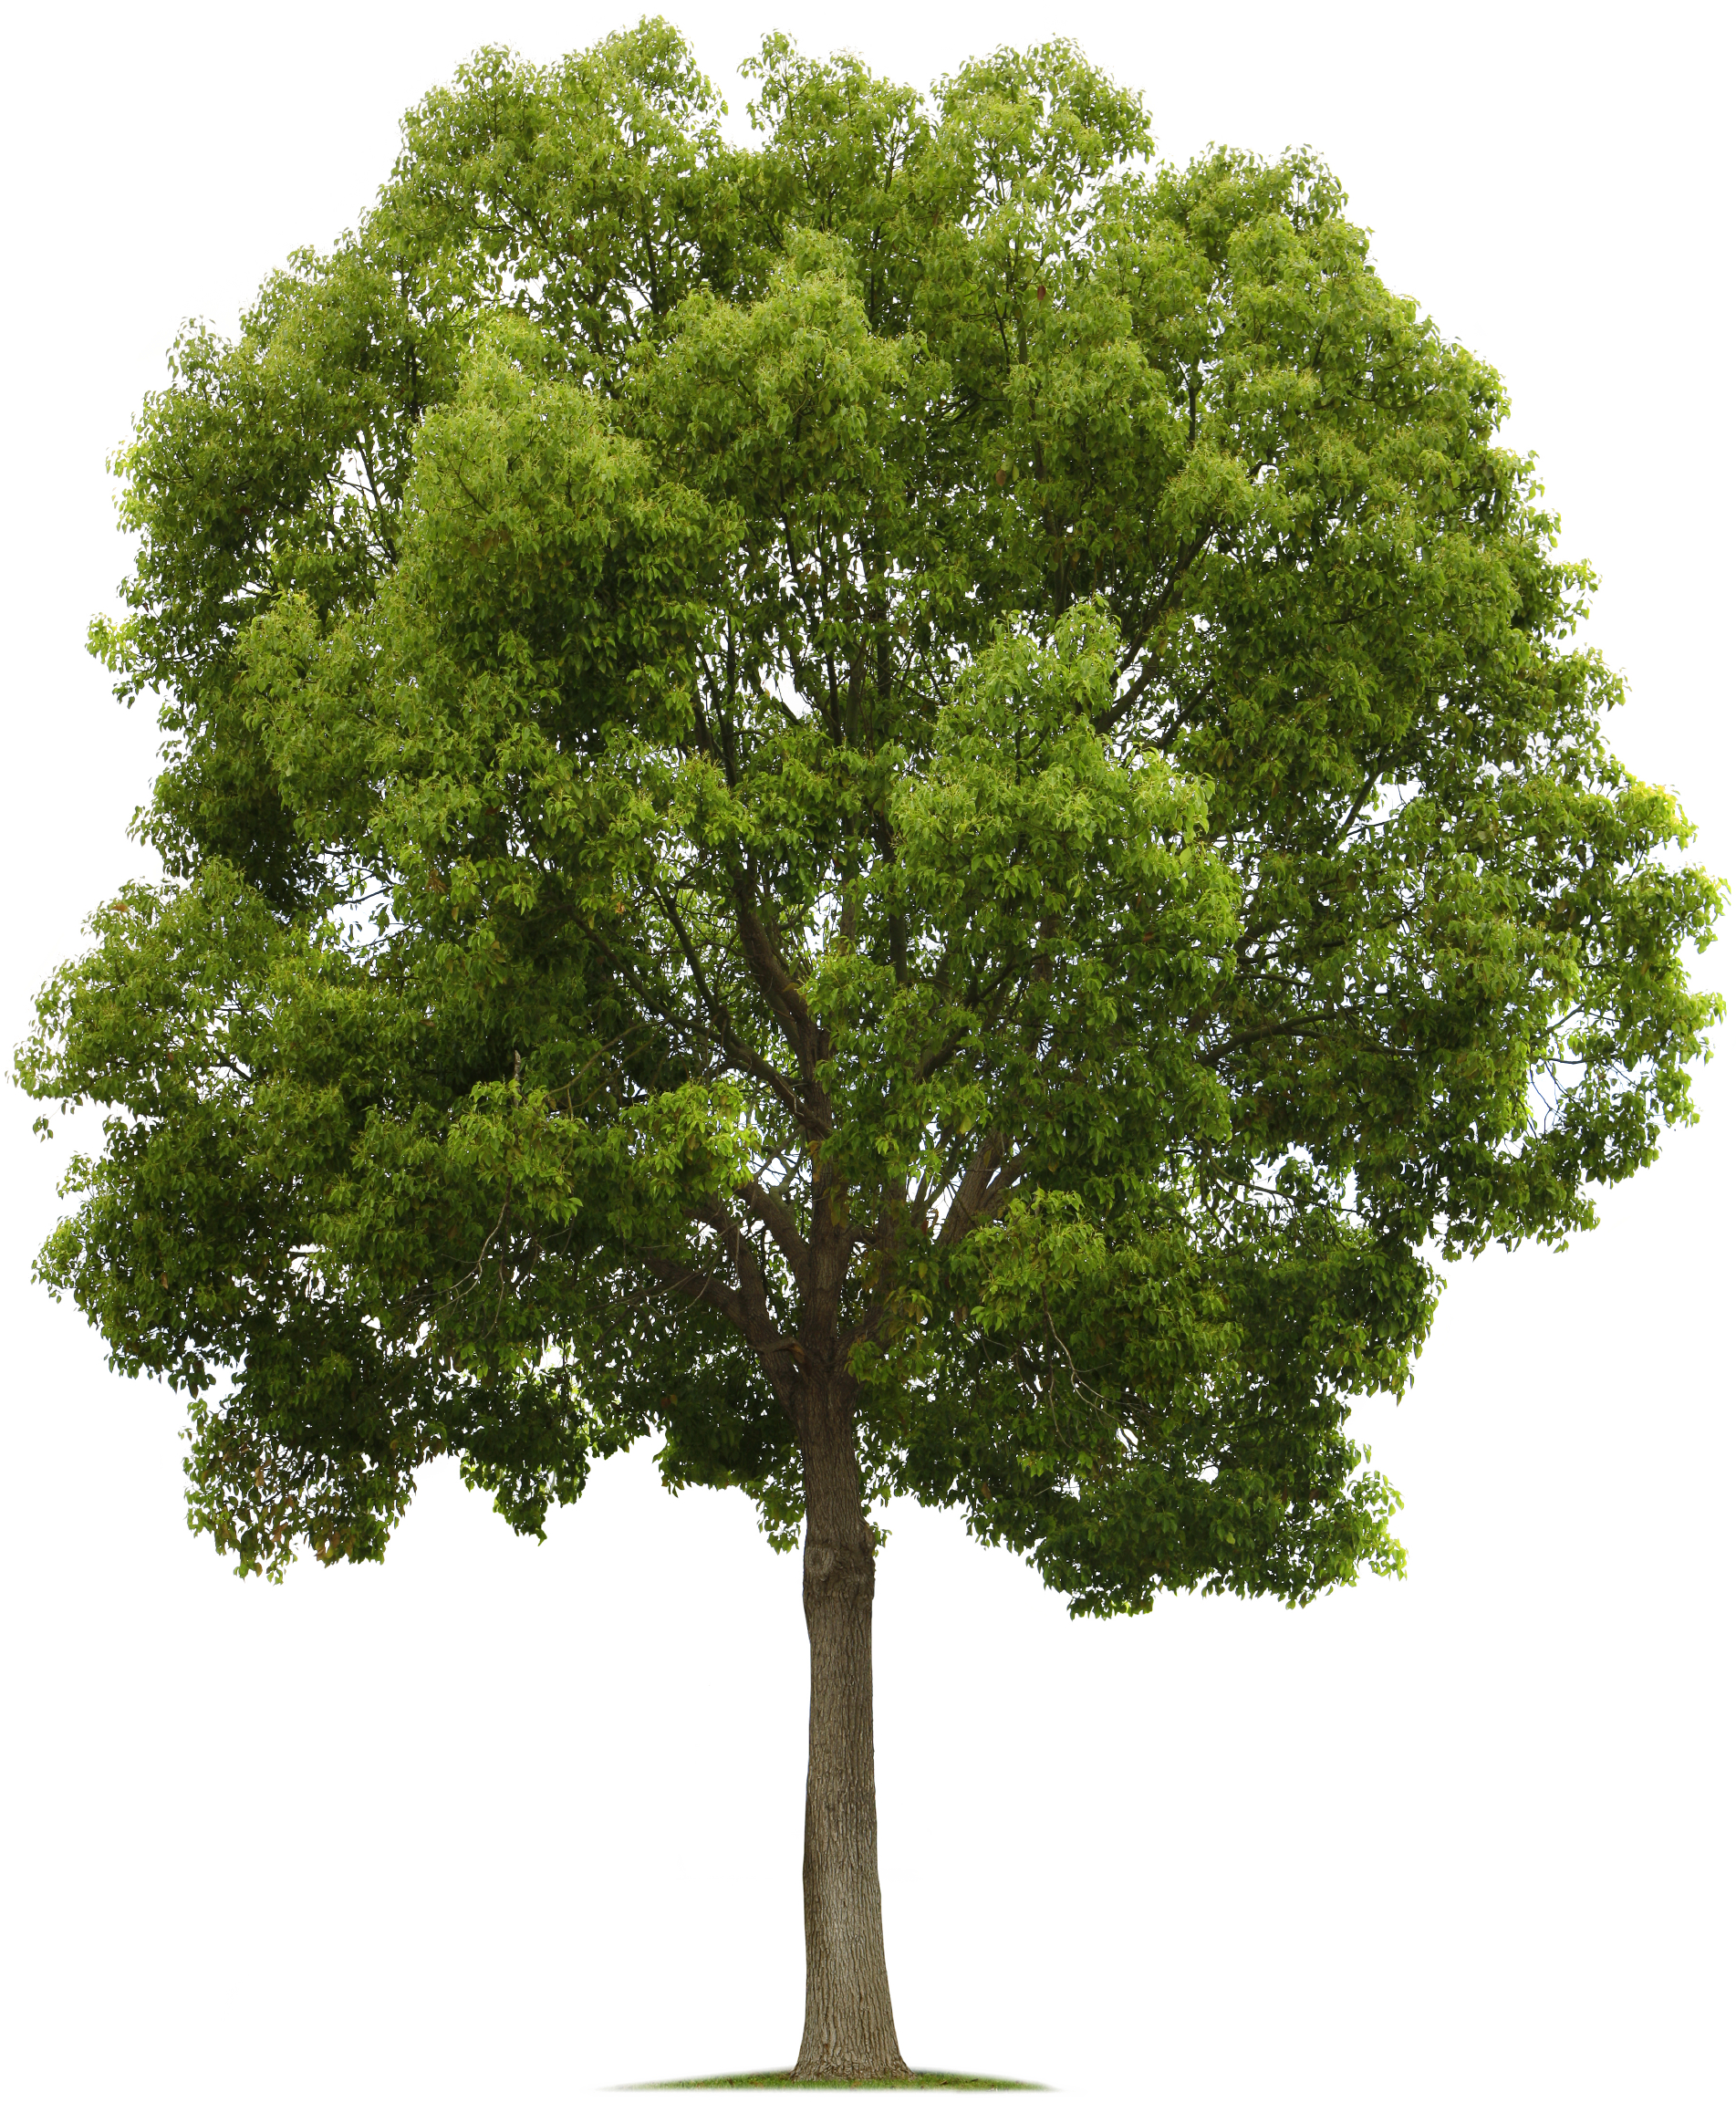 Tree.png (1903×2304) - Tree PNG